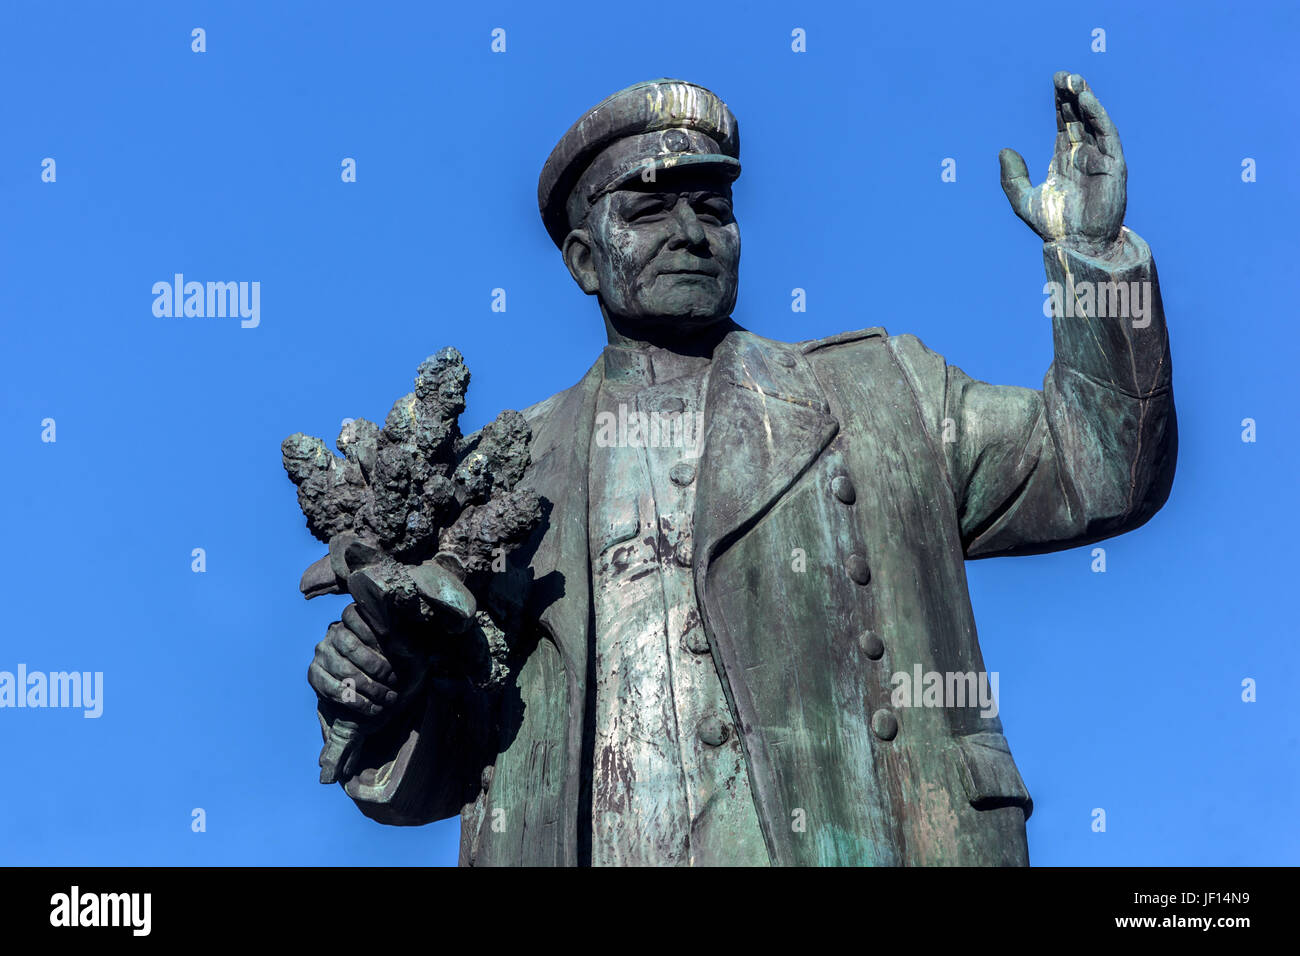 Marshal Ivan Konev, Soviet military commander, monument at Dejvice, district of Prague, Czech Republic, Europe - Stock Image